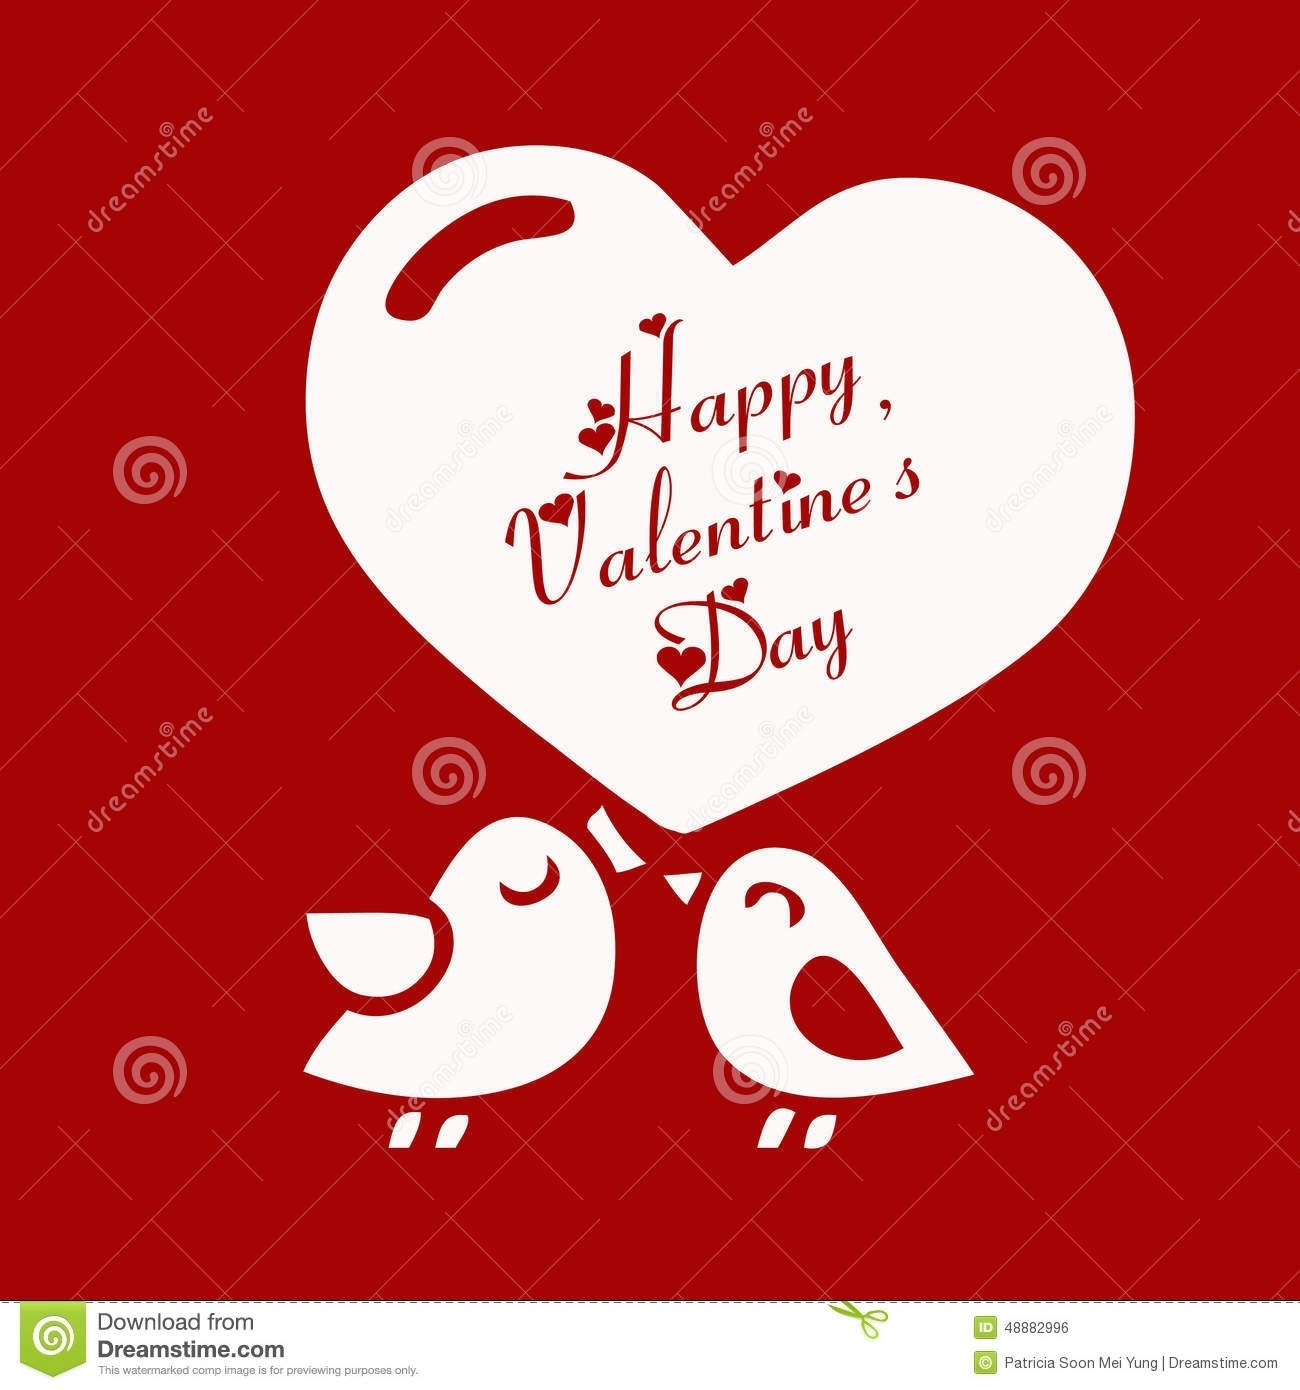 10 Nice Valentines Day Ideas For New Couples happy valentines day love beautiful card with cute love couple birds 2021